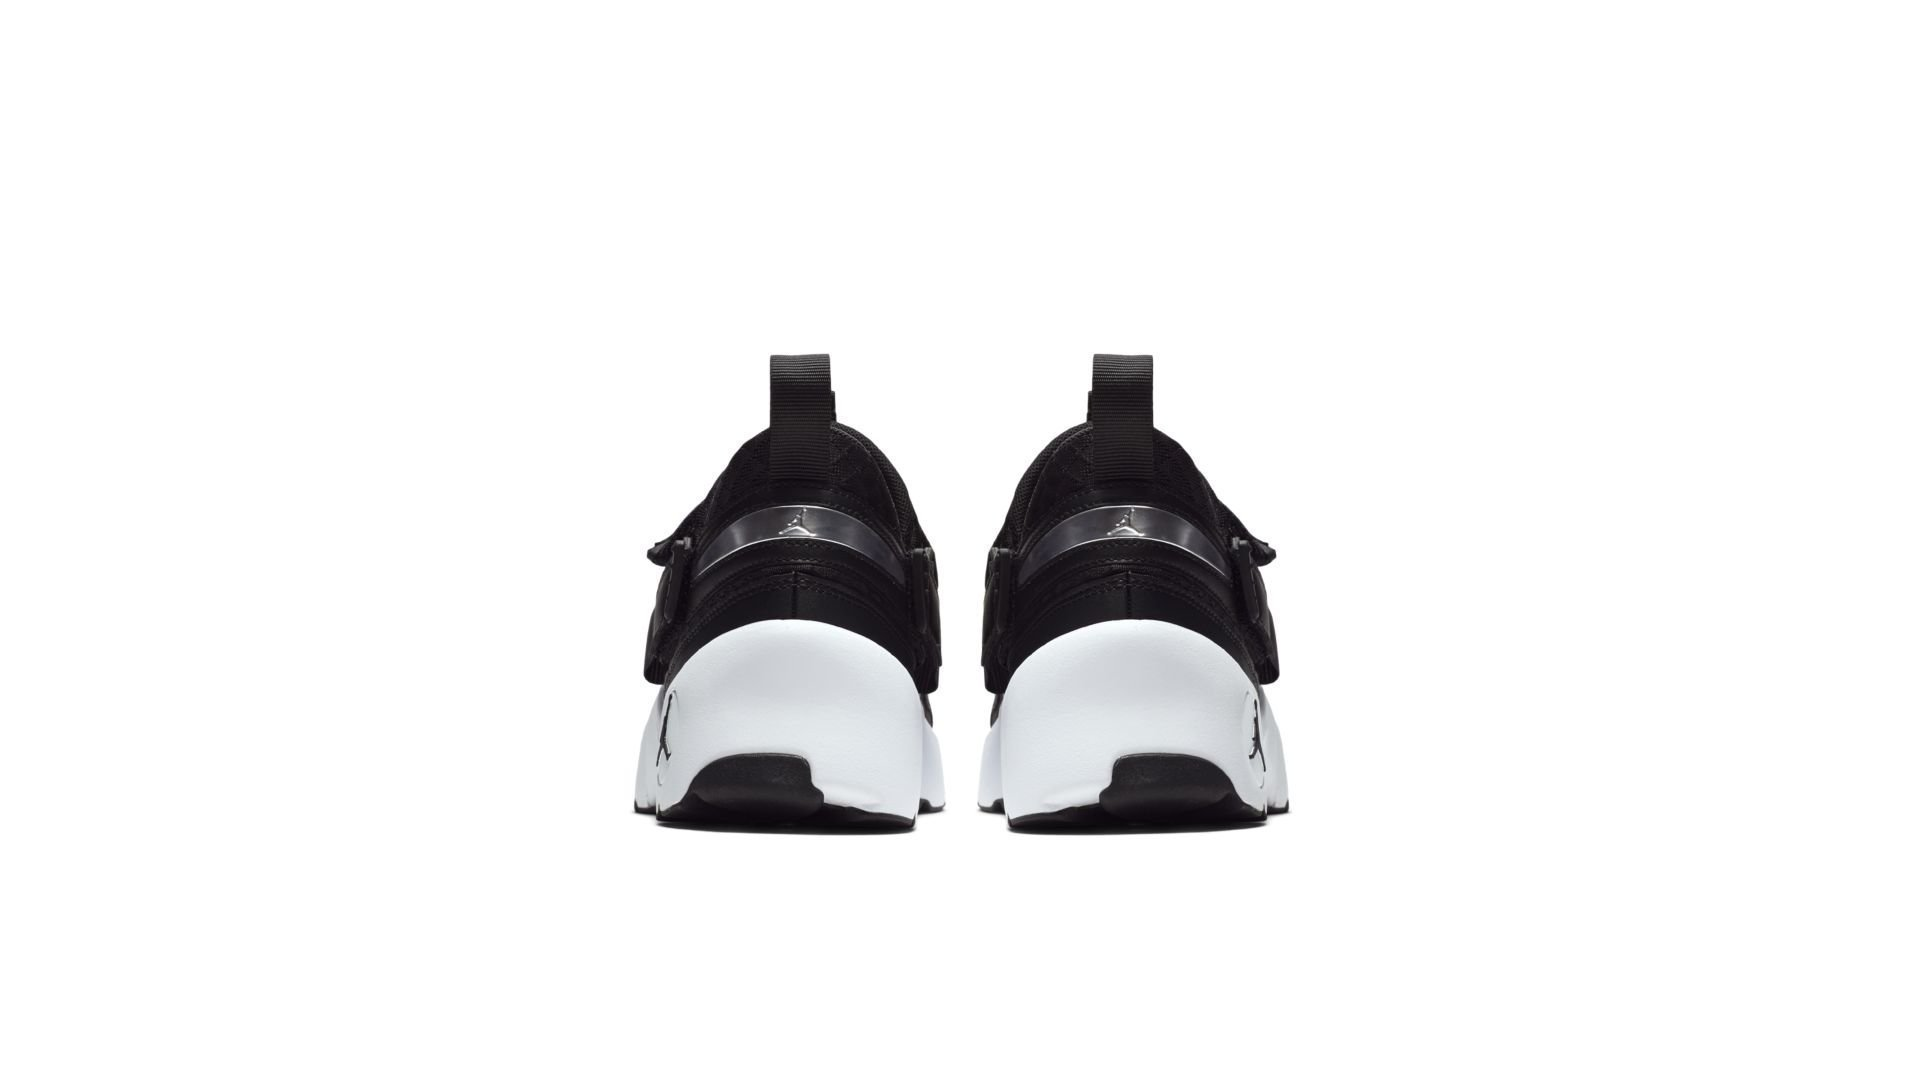 Jordan Trunner LX Black White Sole (897992-011)